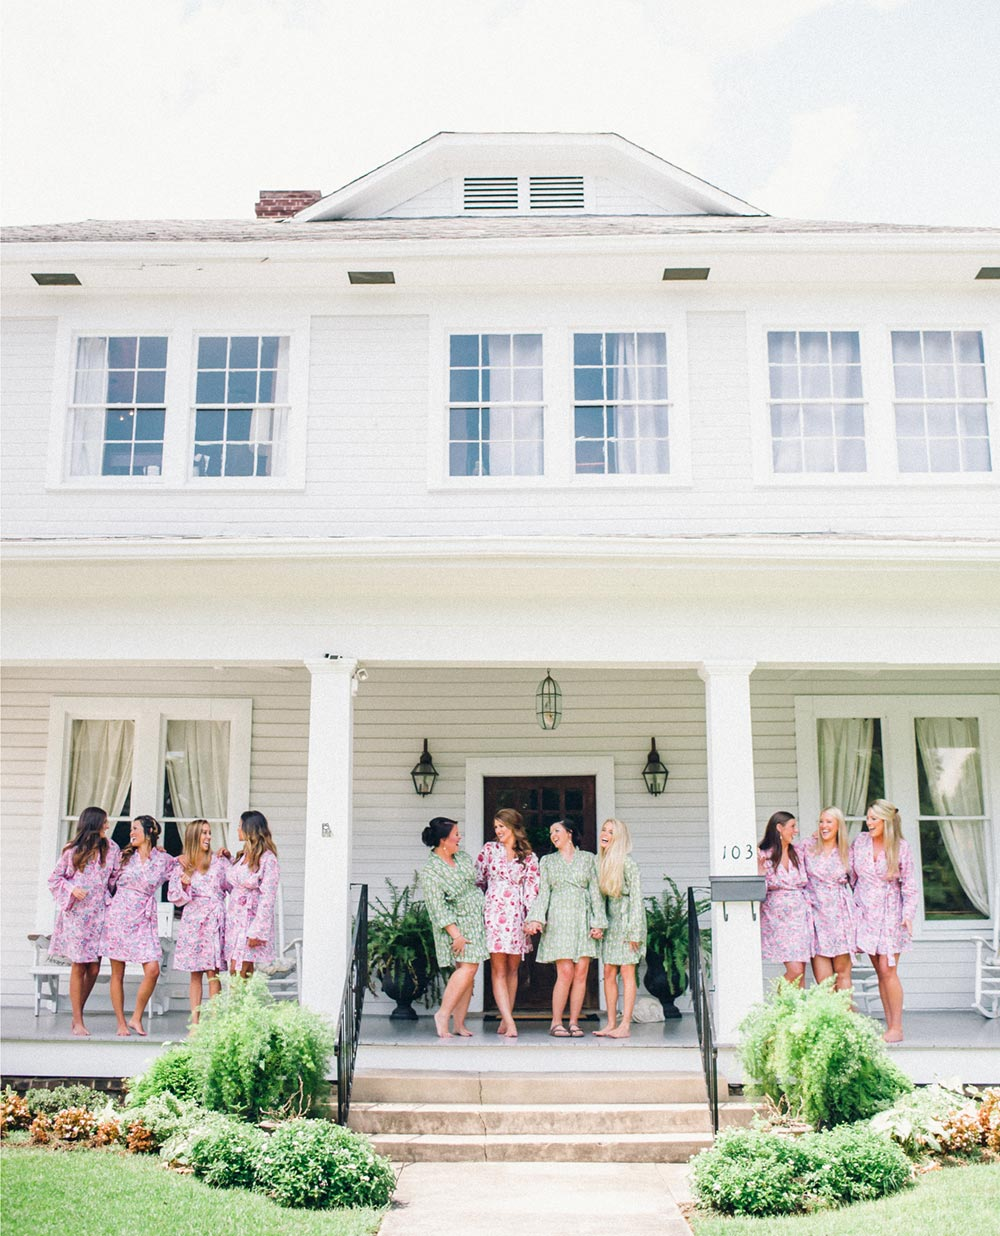 Bridesmaids Outdoor Photography in Robes on Porch